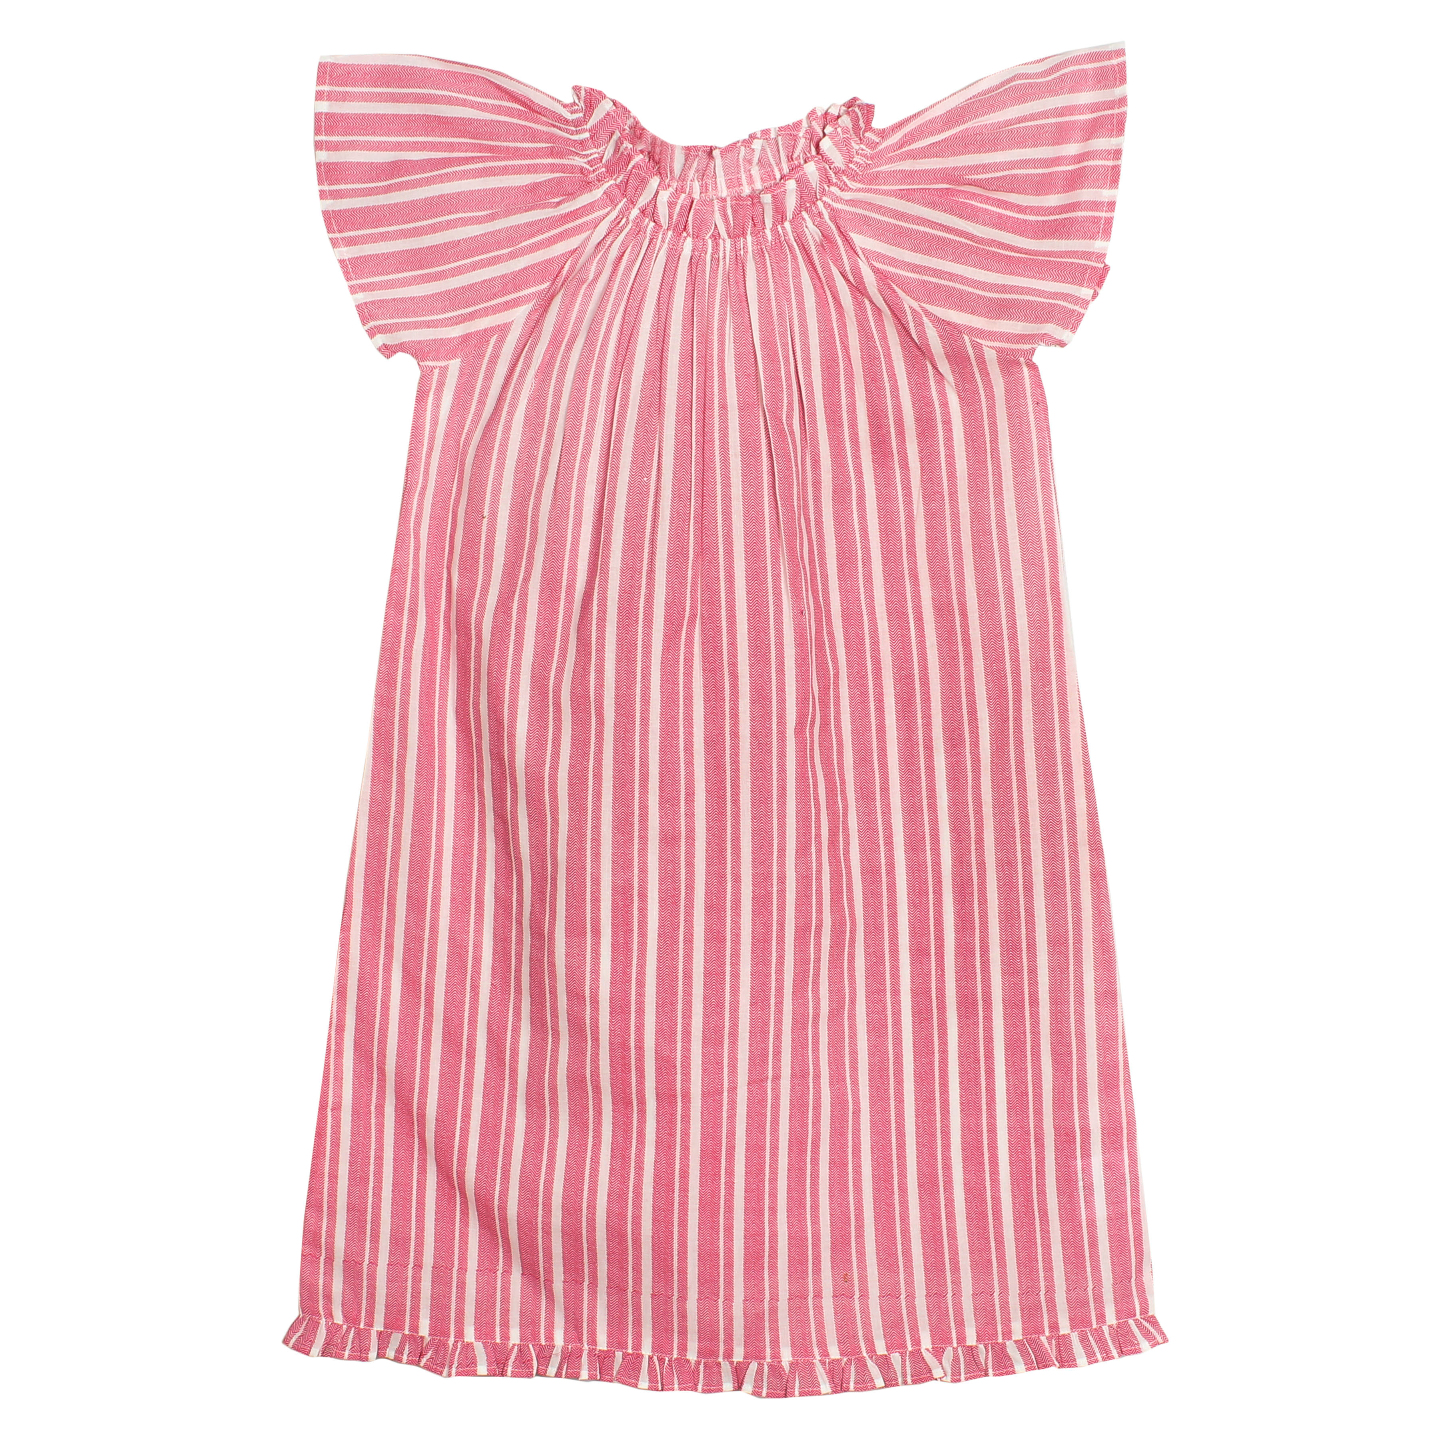 French pink night dress